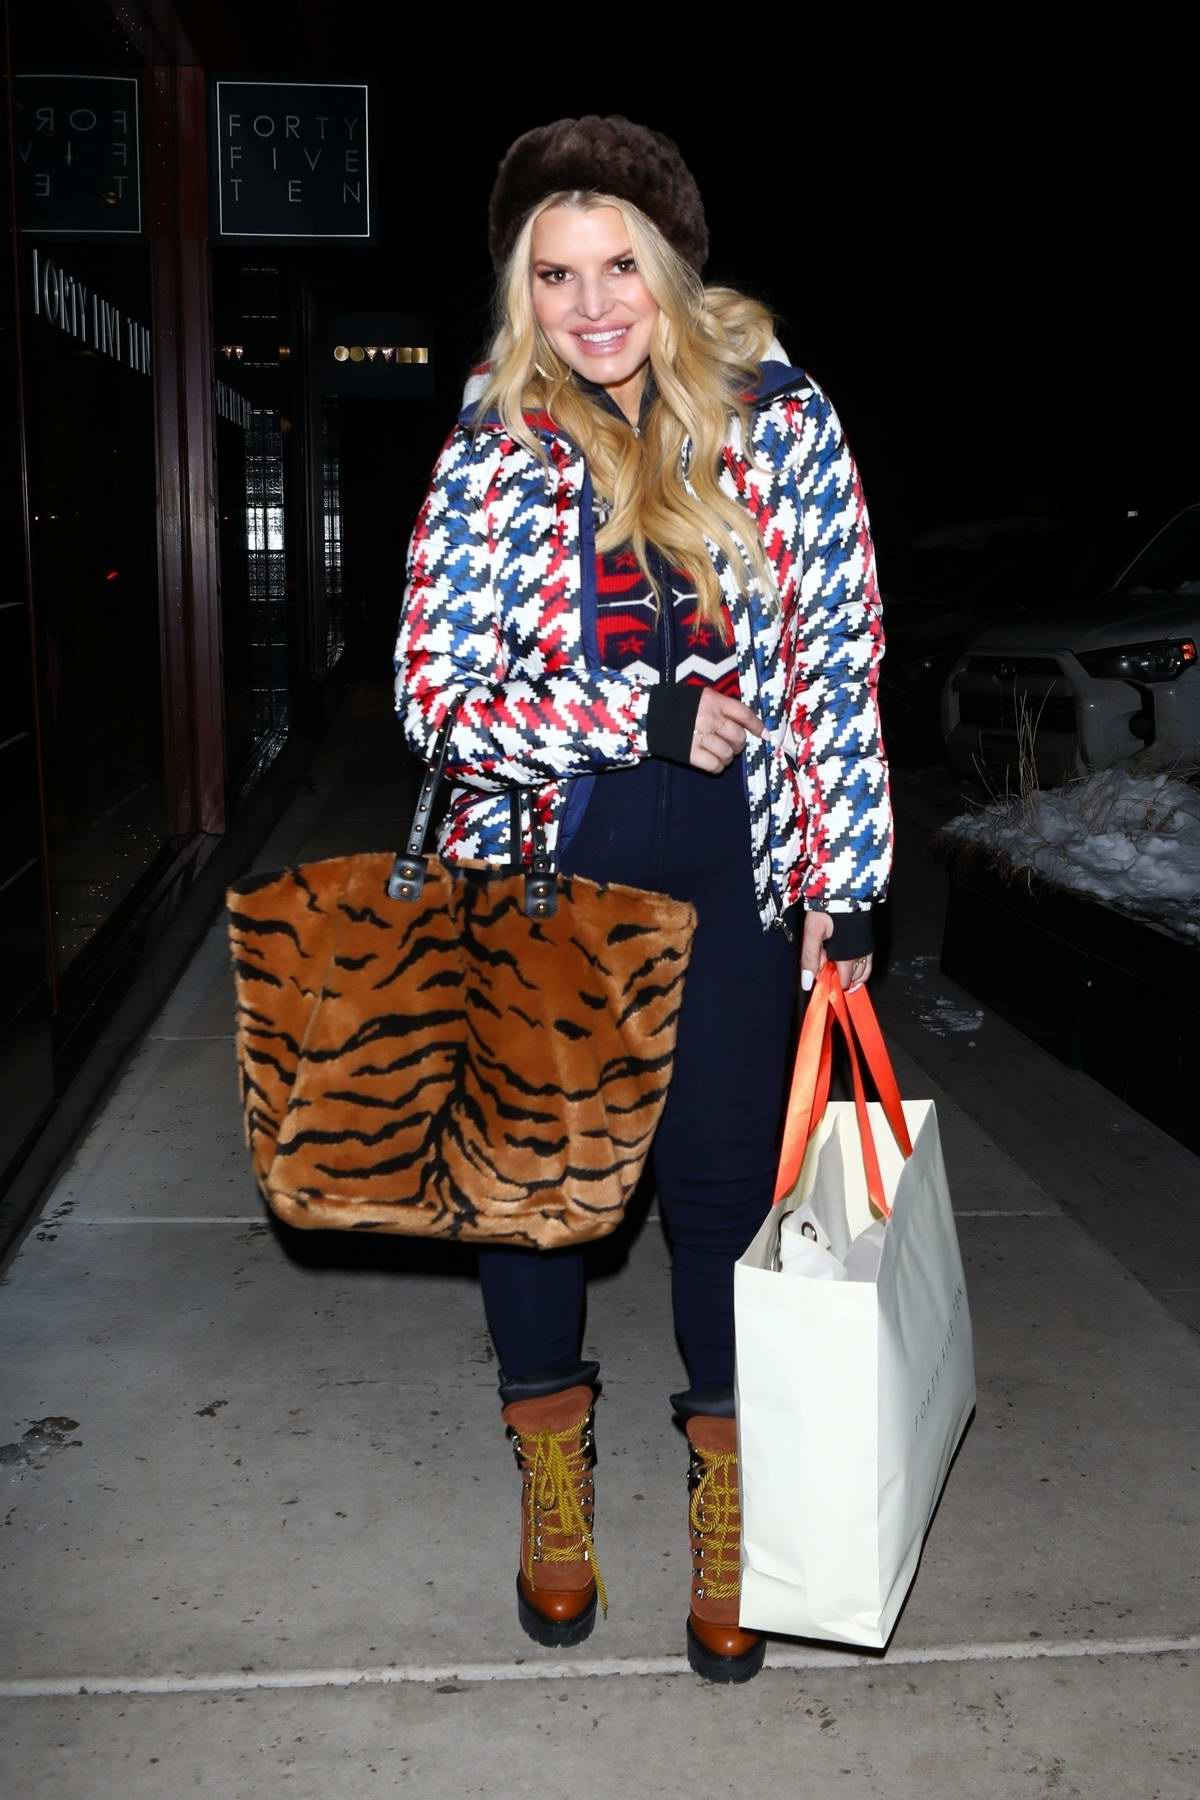 Jessica Simpson is all smiles as she enjoys some retail therapy in Aspen, Colorado